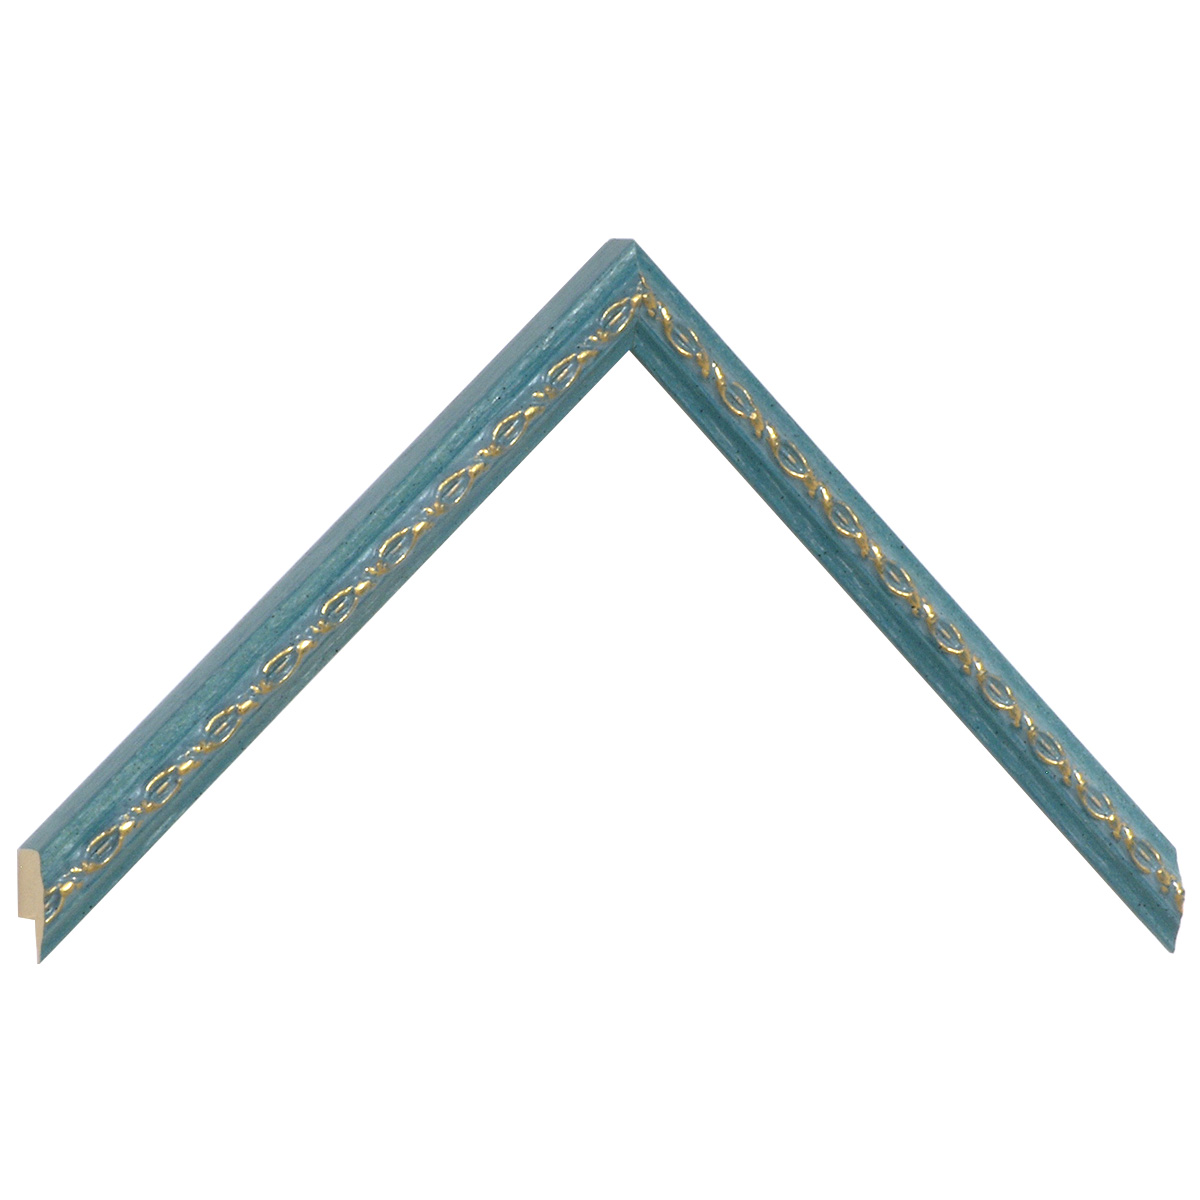 Moulding ayous 14mm - azure, gold decorative relief